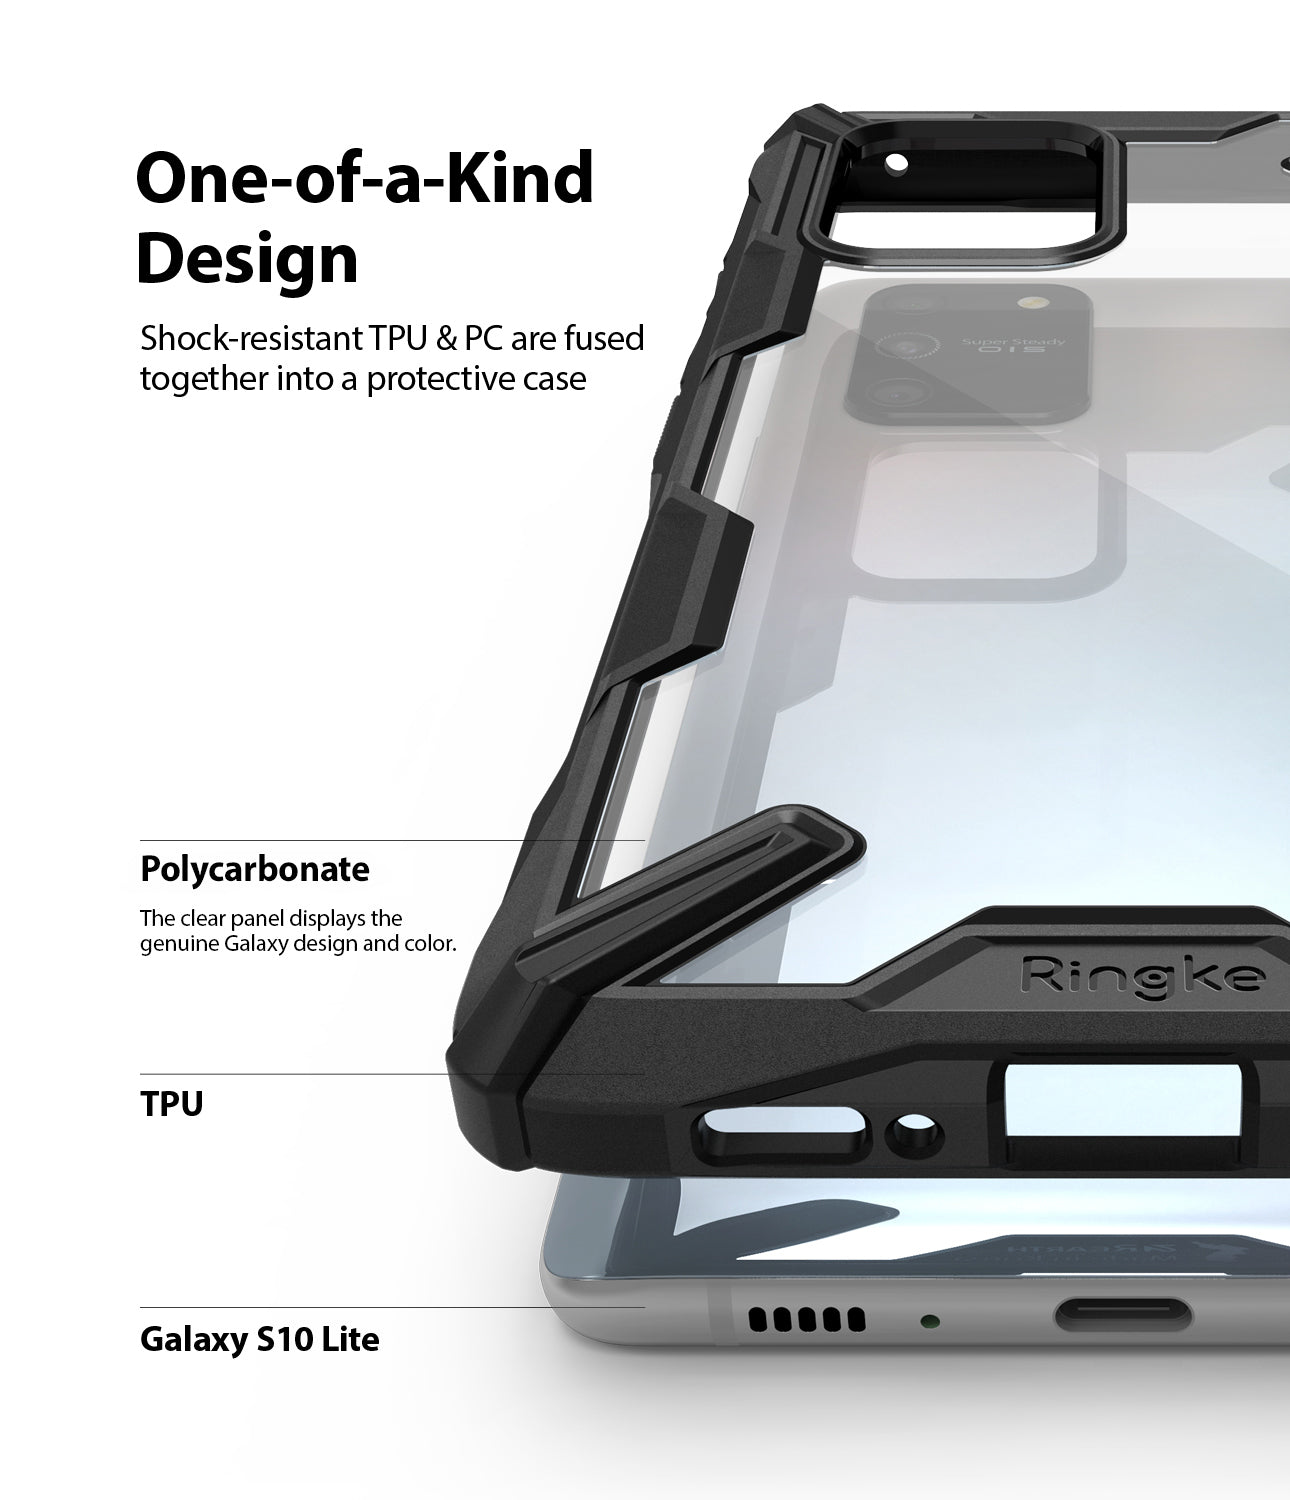 Ringke Fusion-X Case for Galaxy S10 Lite, Black, One-of-a-kind-design, Polycarbonate